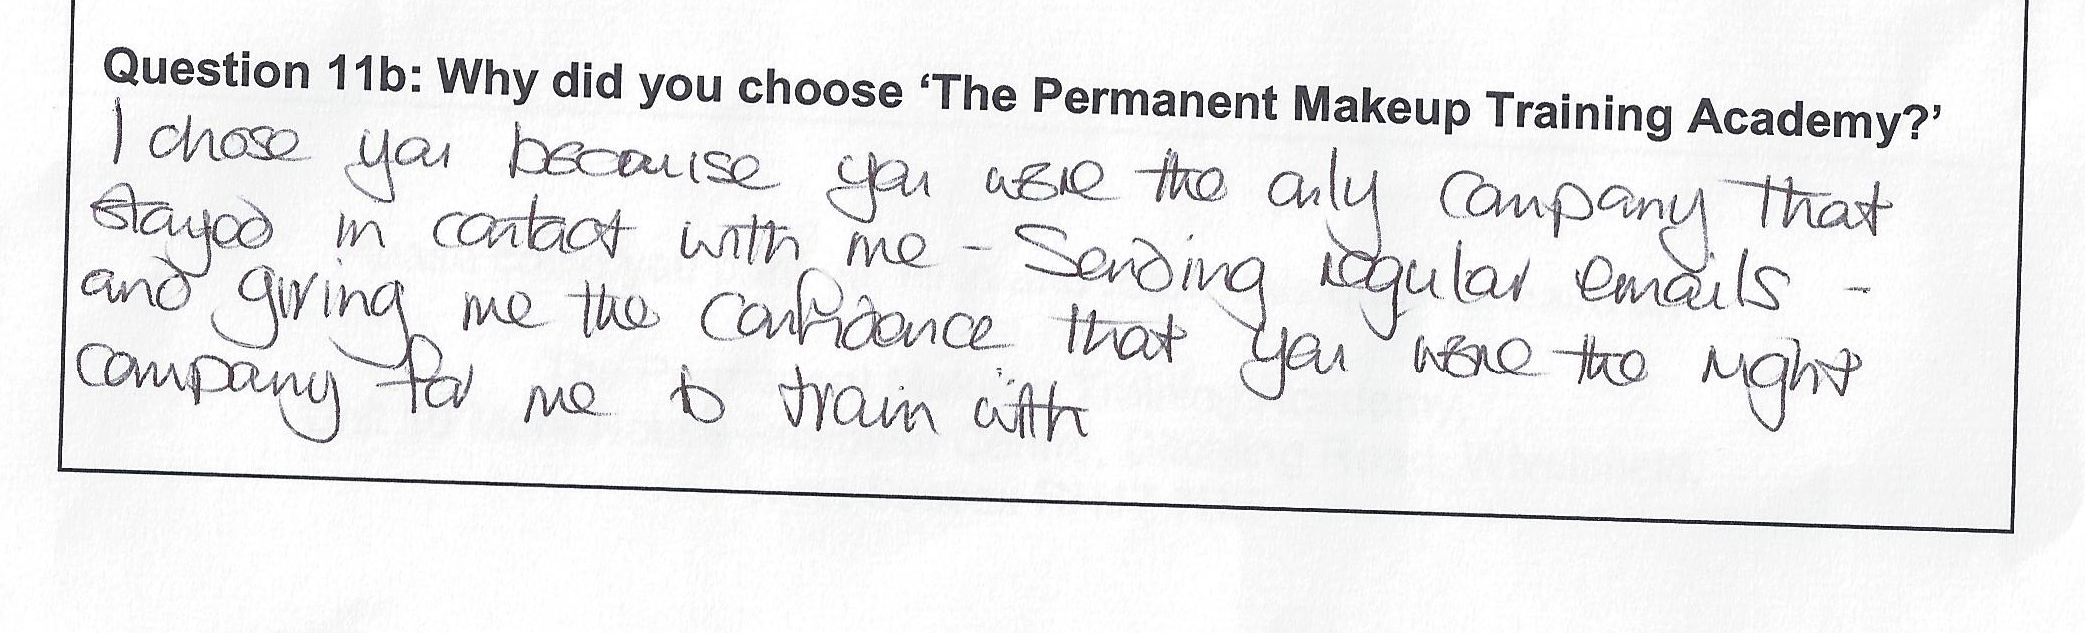 why did you choose to train with the Permanent Makeup Training Academy student review 2